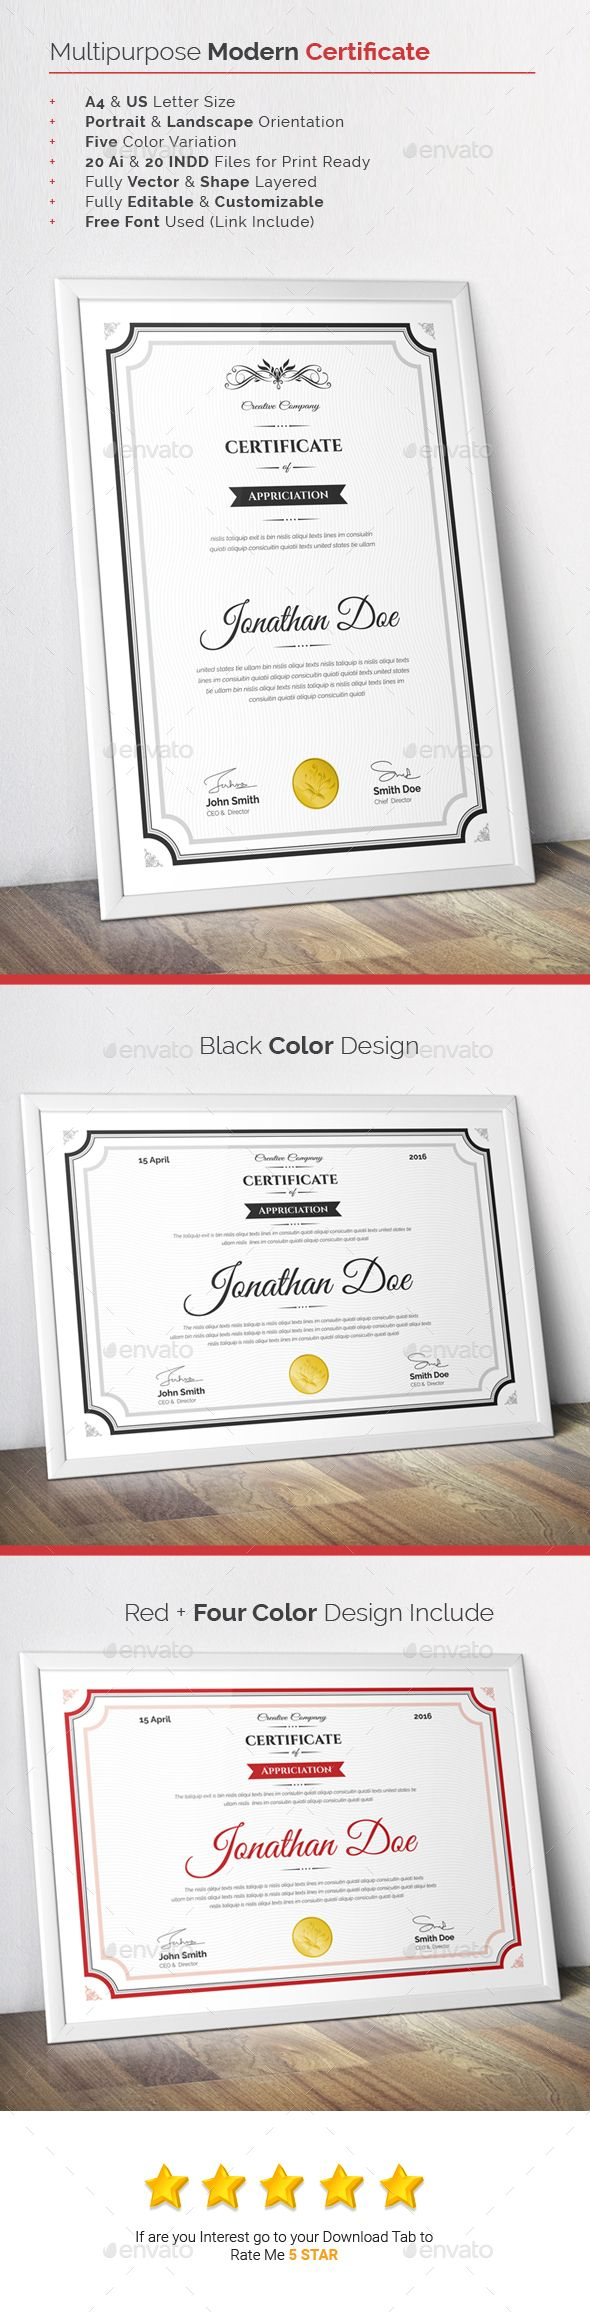 #Modern Certificate Template.Download here: http://graphicriver.net/item/multipurpose-modern-certificate-template/16175143?ref=arroganttype